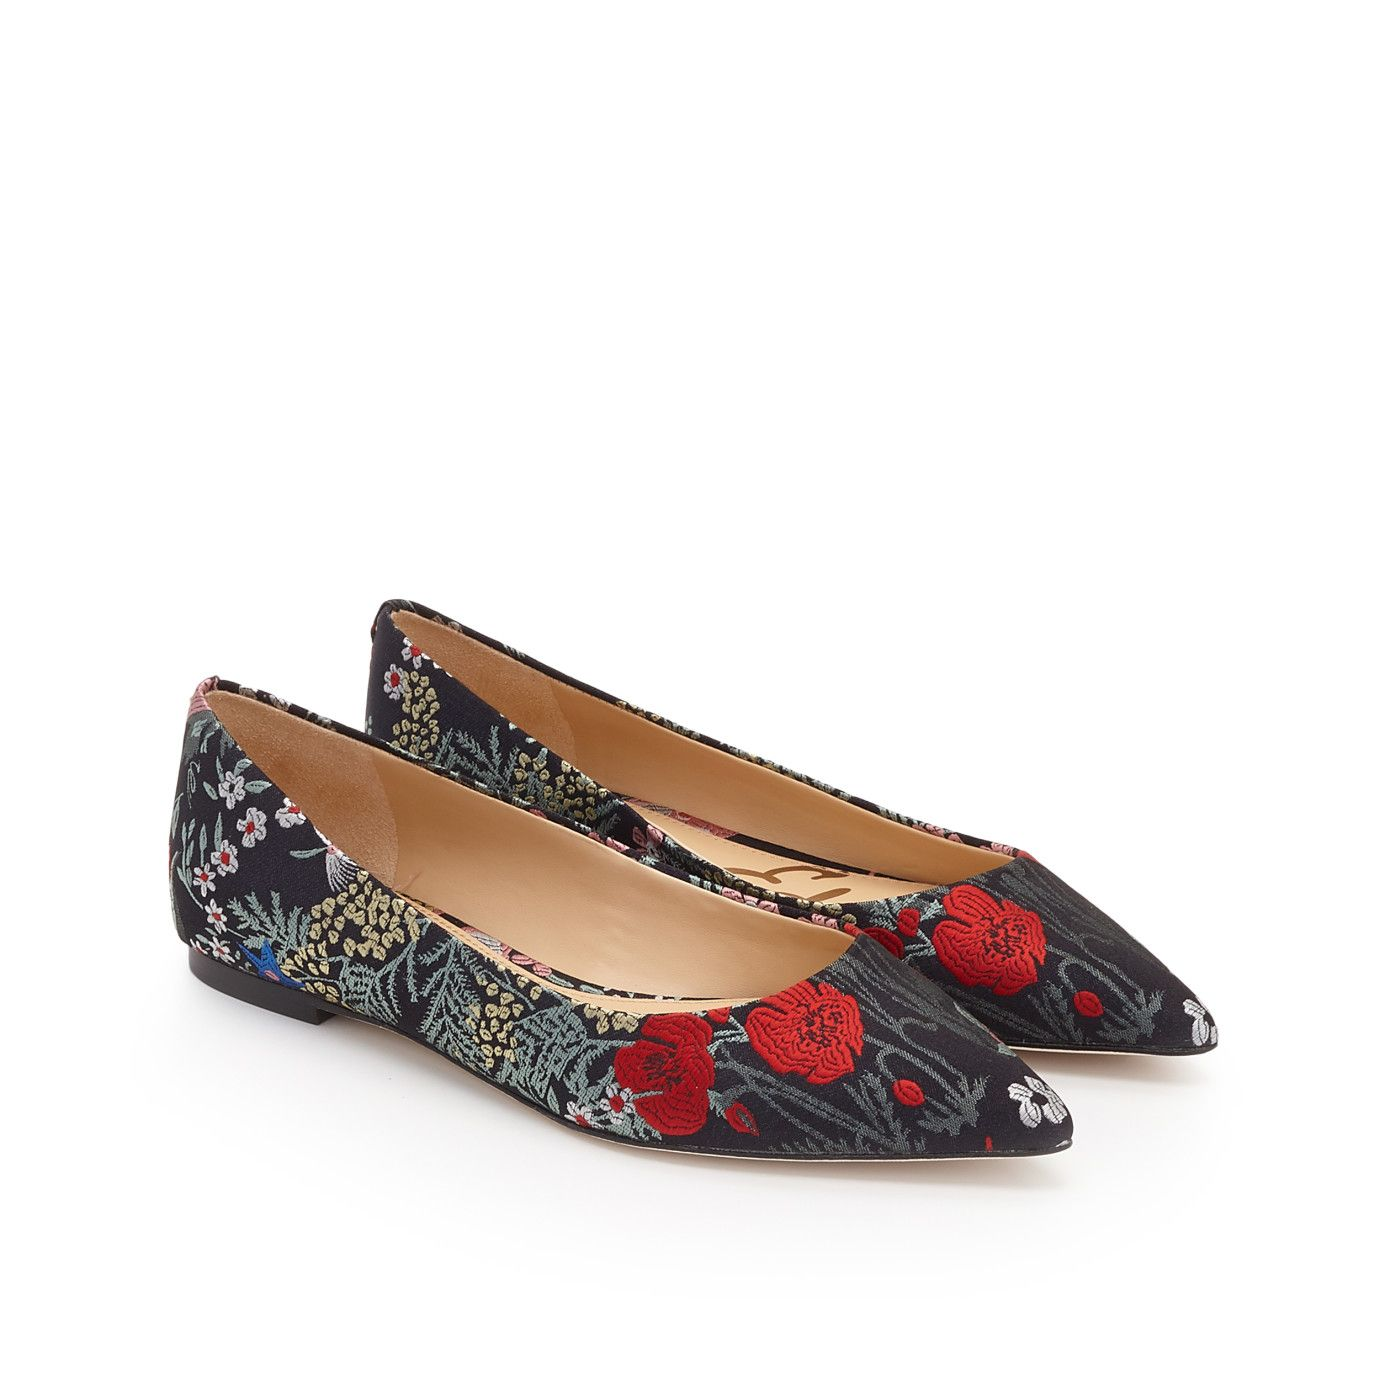 606875bb46a3a Rae Pointed-Toe Flat by Sam Edelman - Grey Multi Floral - View 1 ...